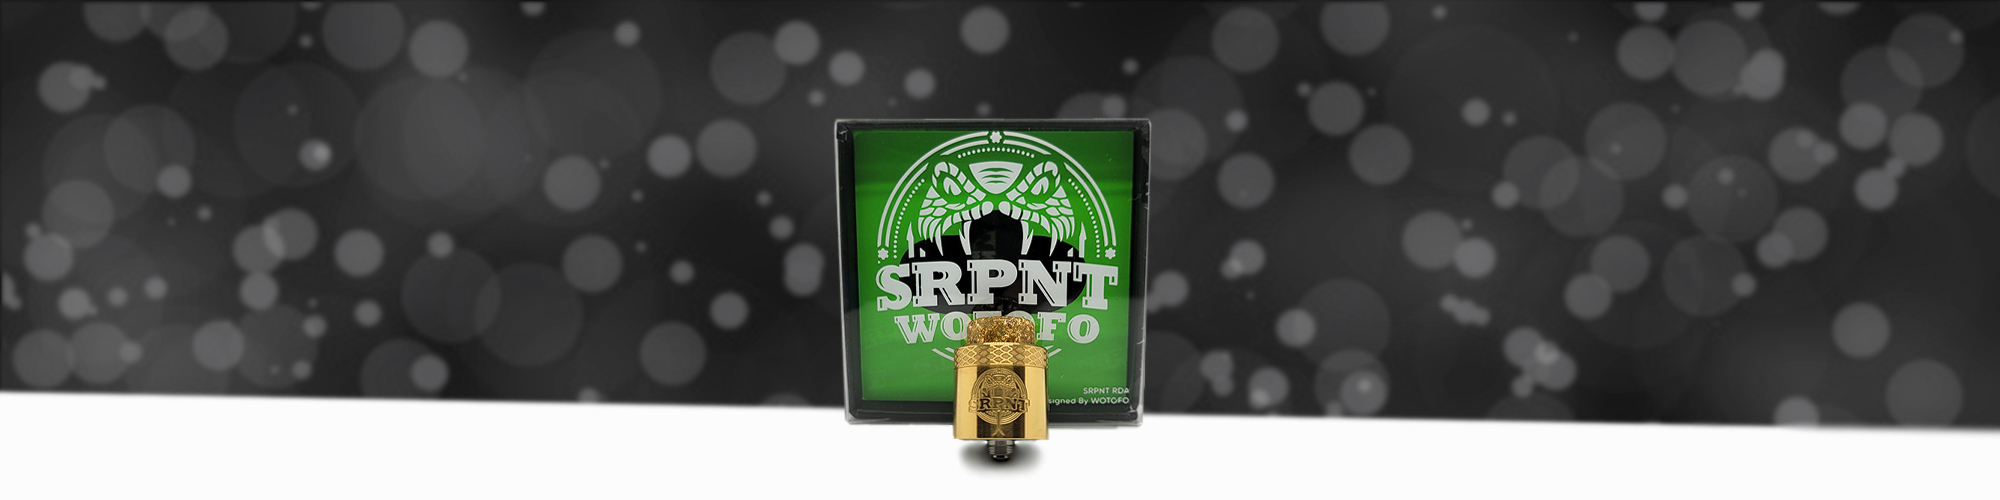 Wotofo SRPNT Review Main Banner